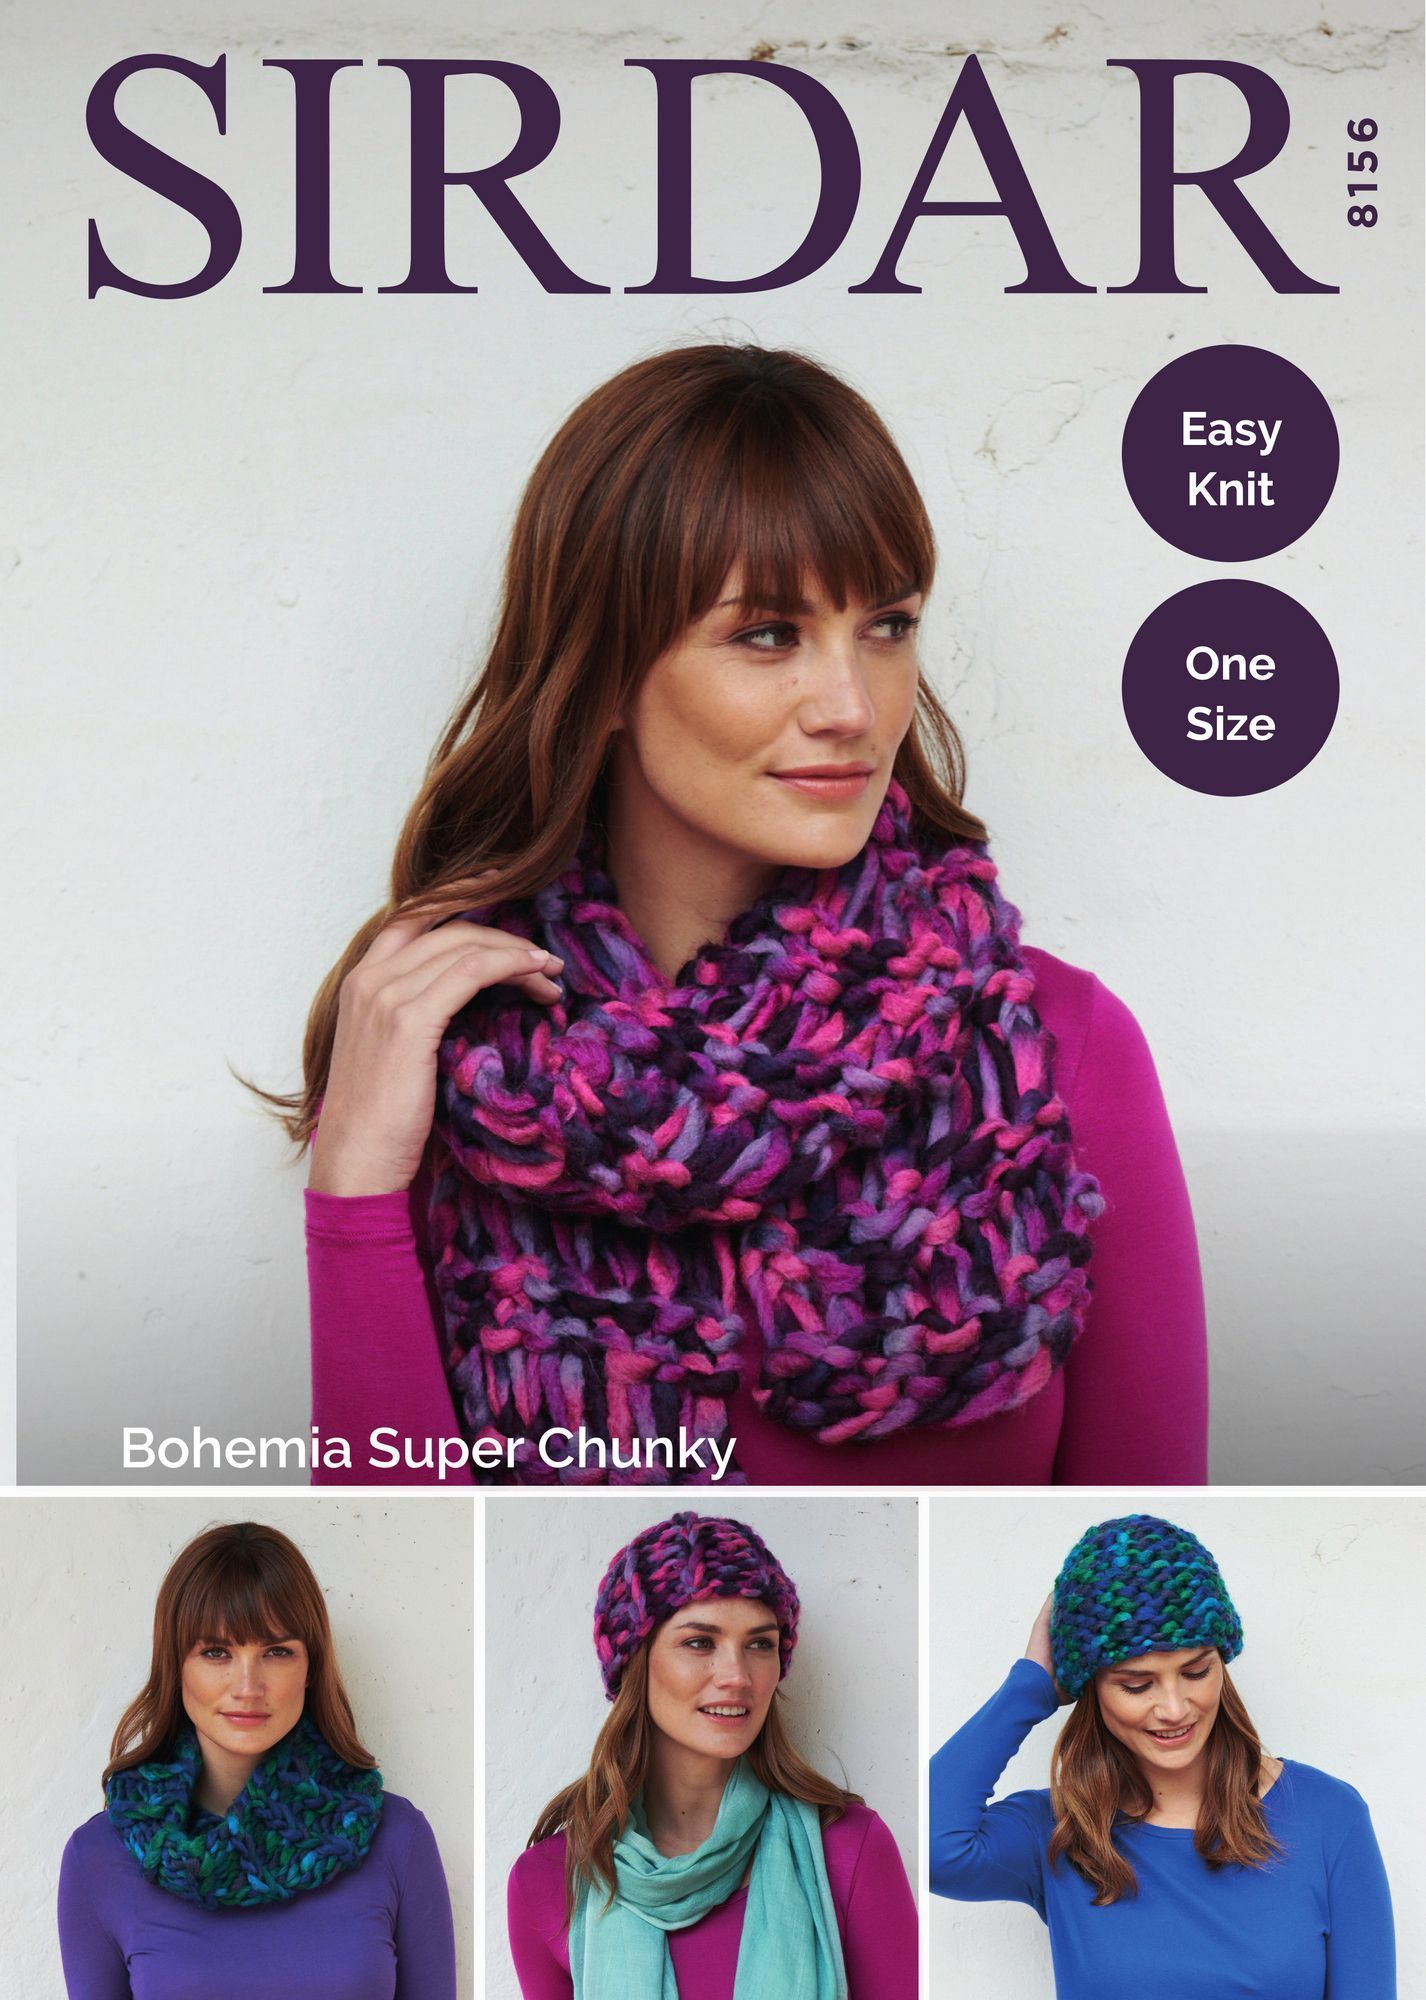 Accessories in Sirdar Bohemia Super Chunky (8156)